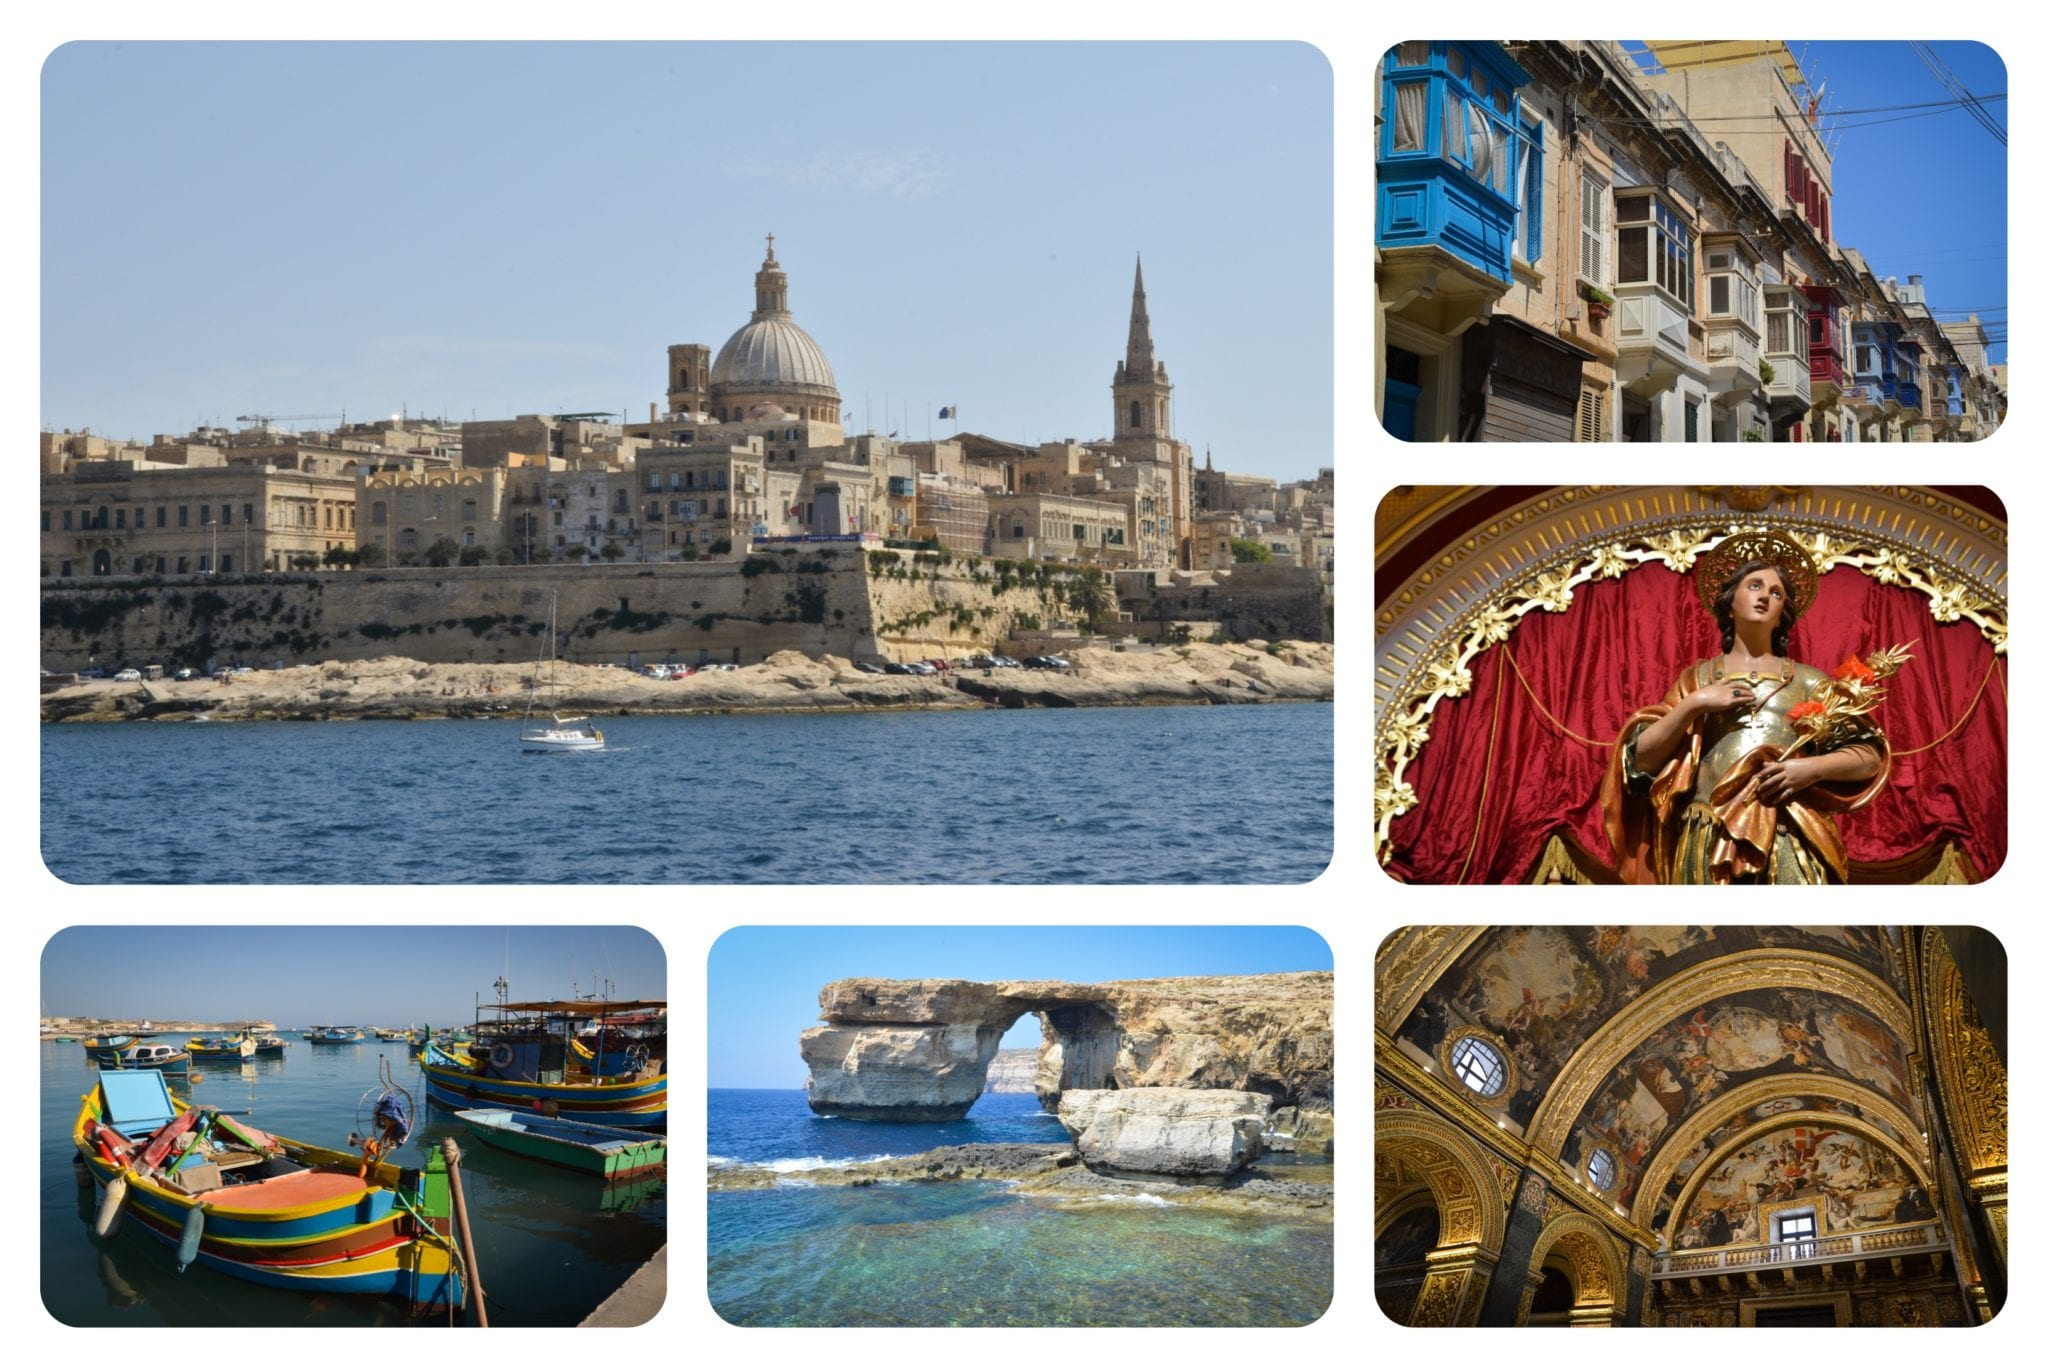 Best of 2013: Malta